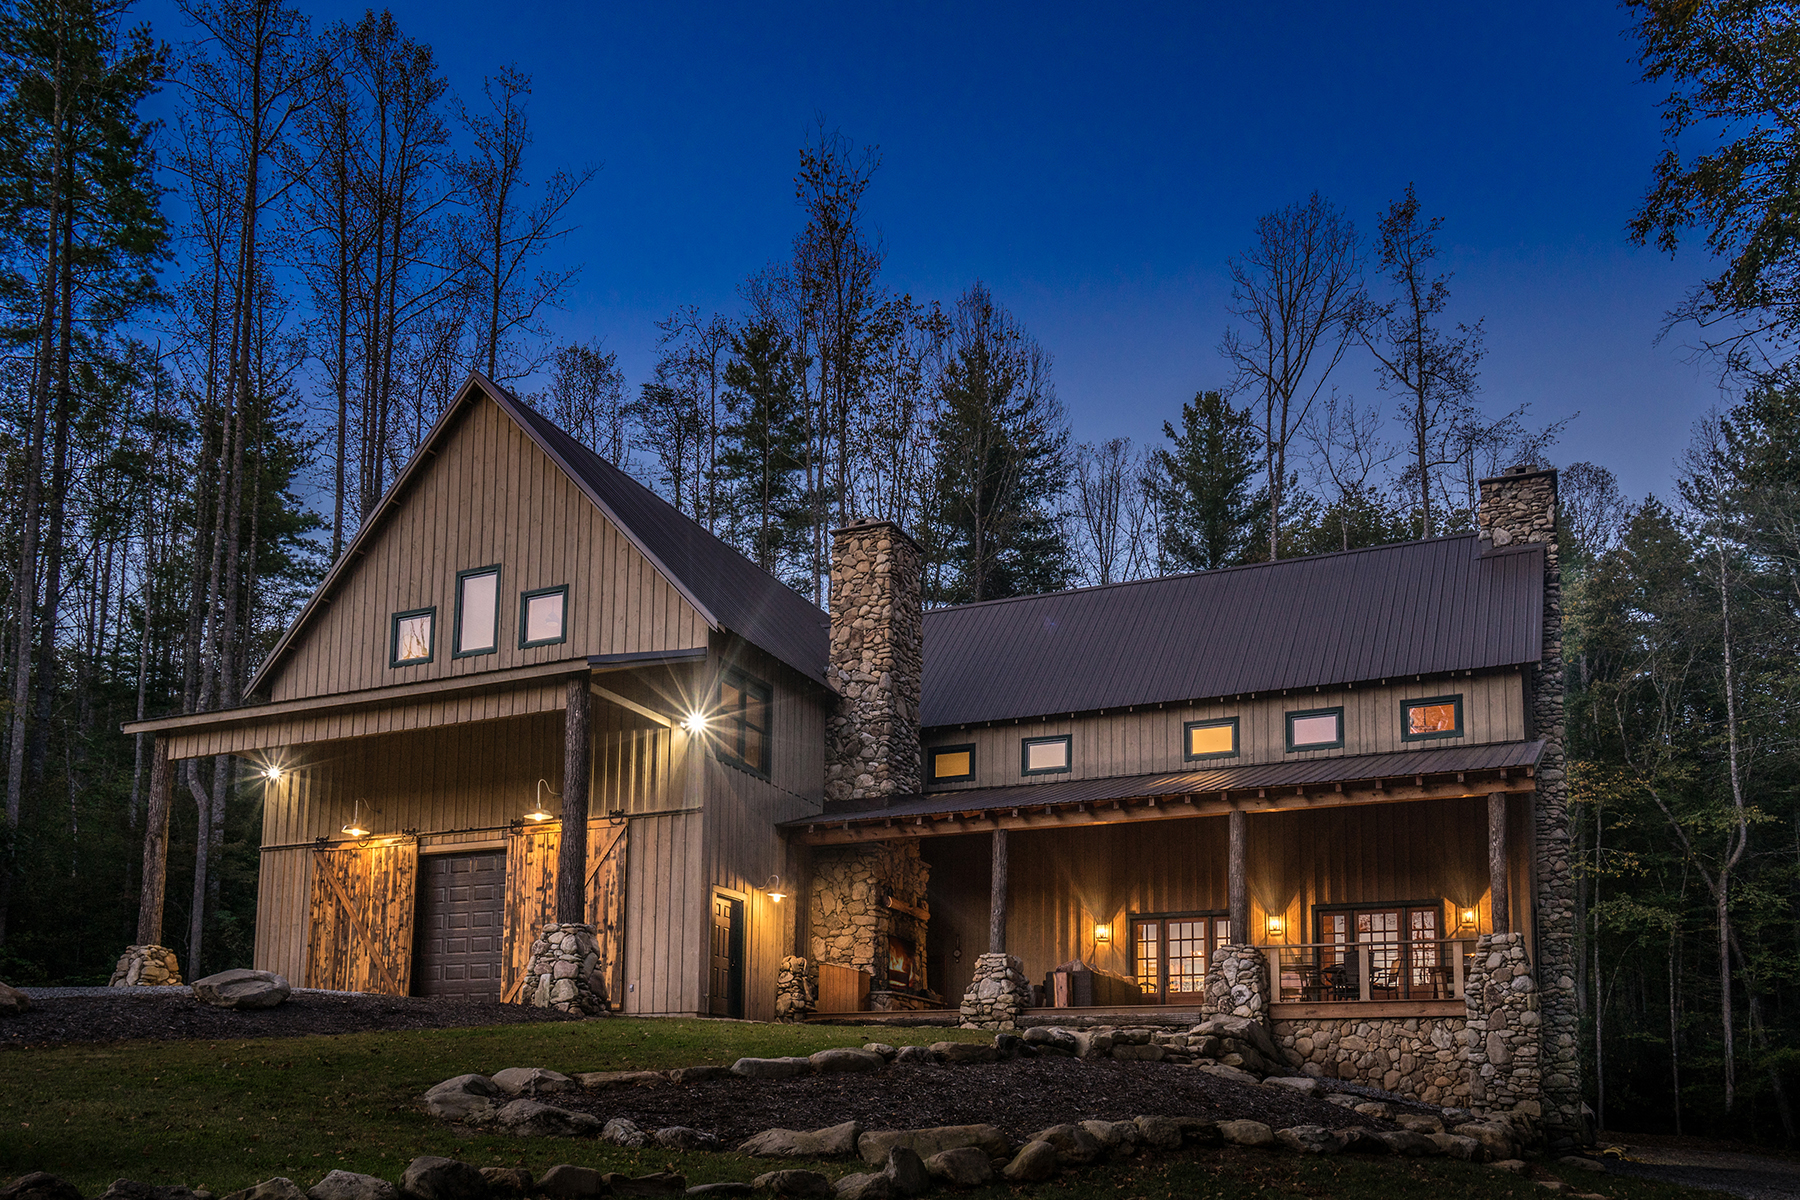 Single Family Home for Sale at 152 ACRE BLUE RIDGE MOUNTAIN ESTATE 7035 Johns River Rd, Lenoir, North Carolina 28645 United StatesIn/Around: Blowing Rock